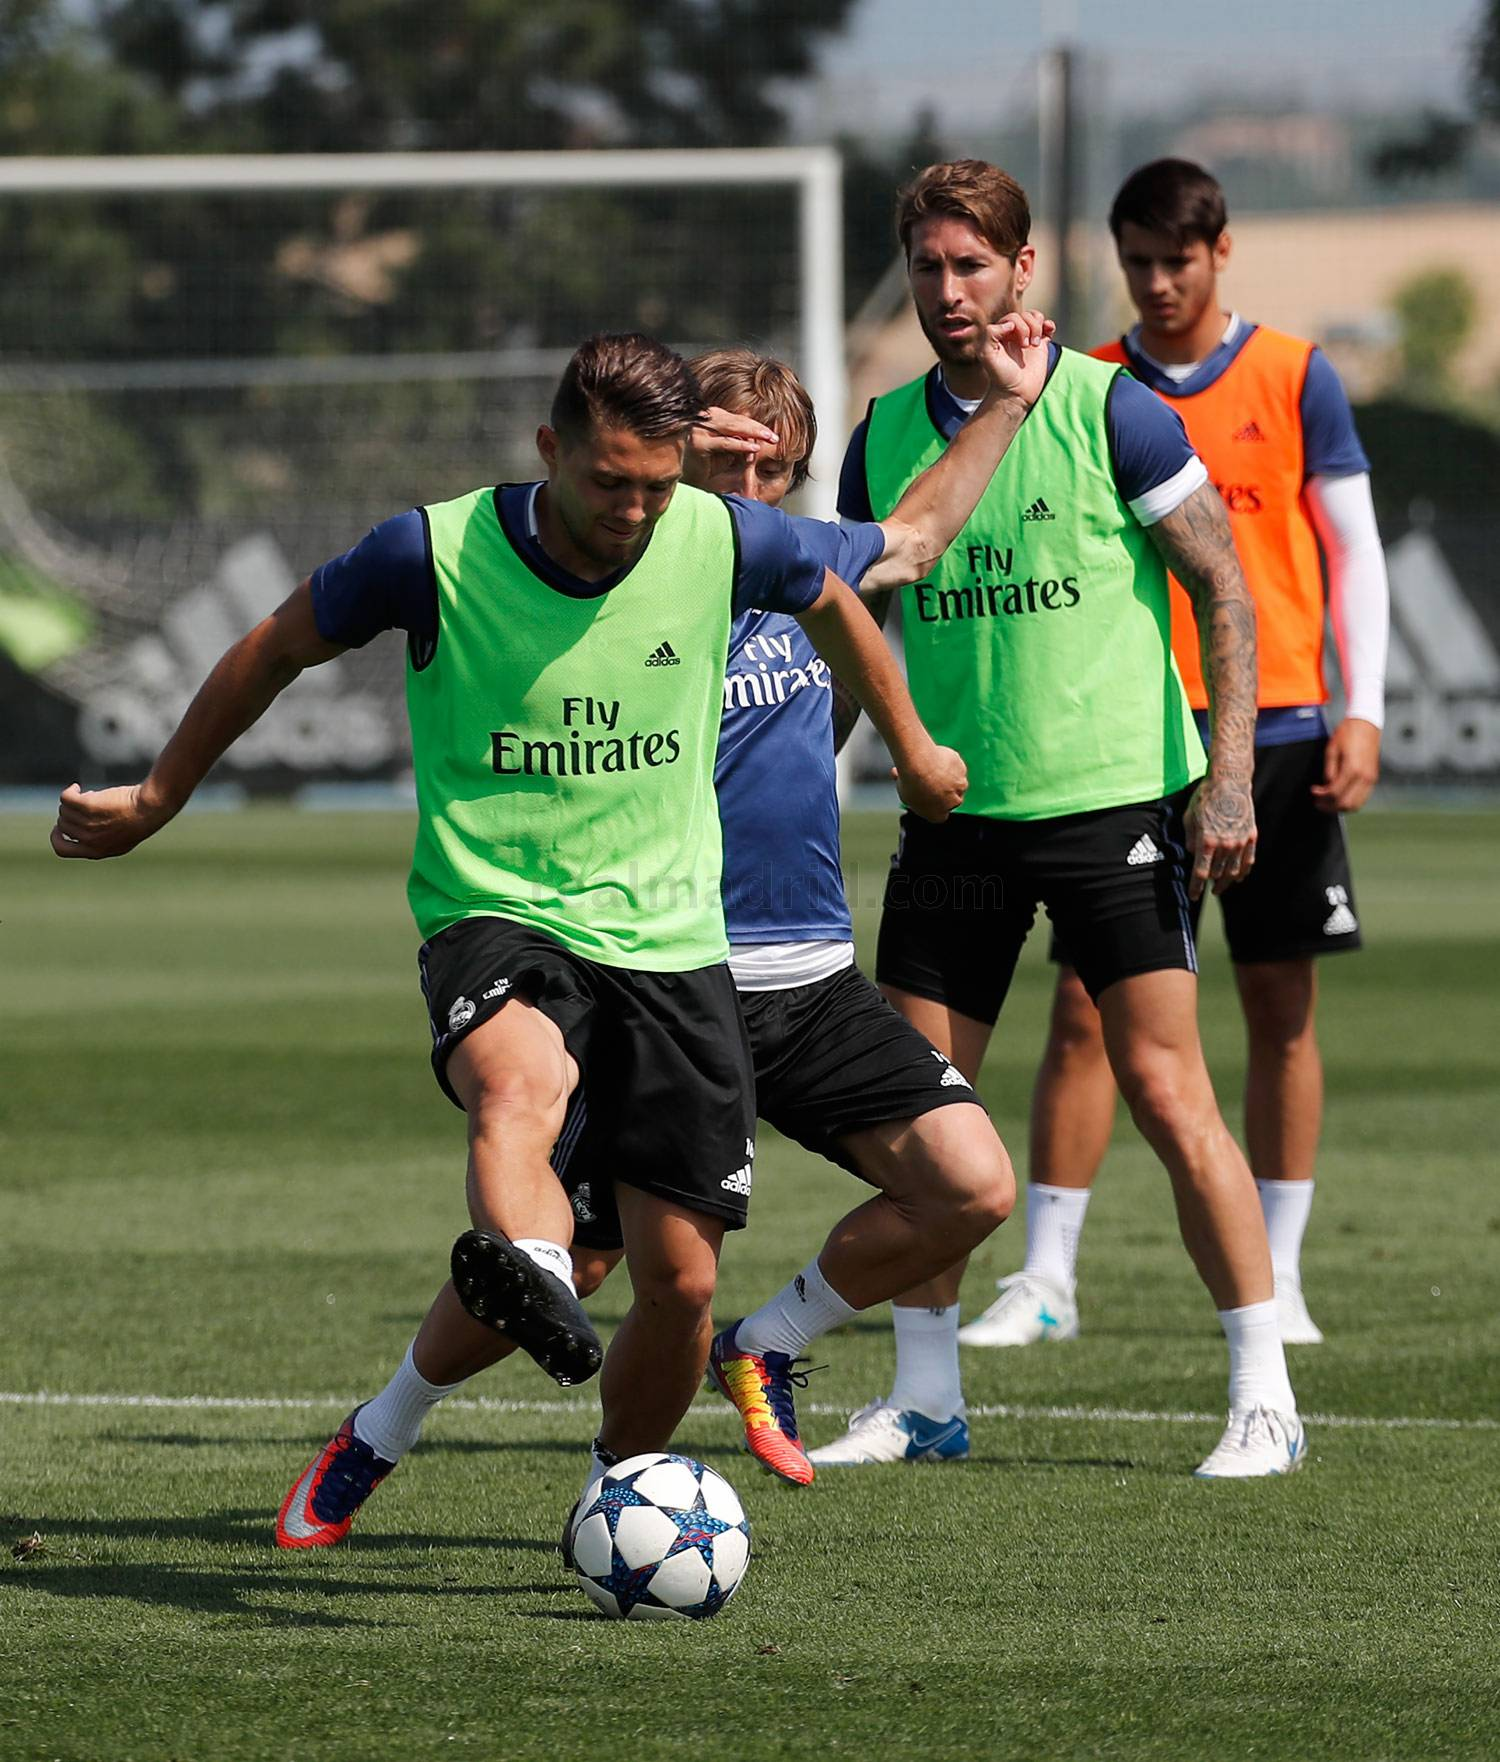 Real Madrid - Entrenamiento del Real Madrid - 01-06-2017